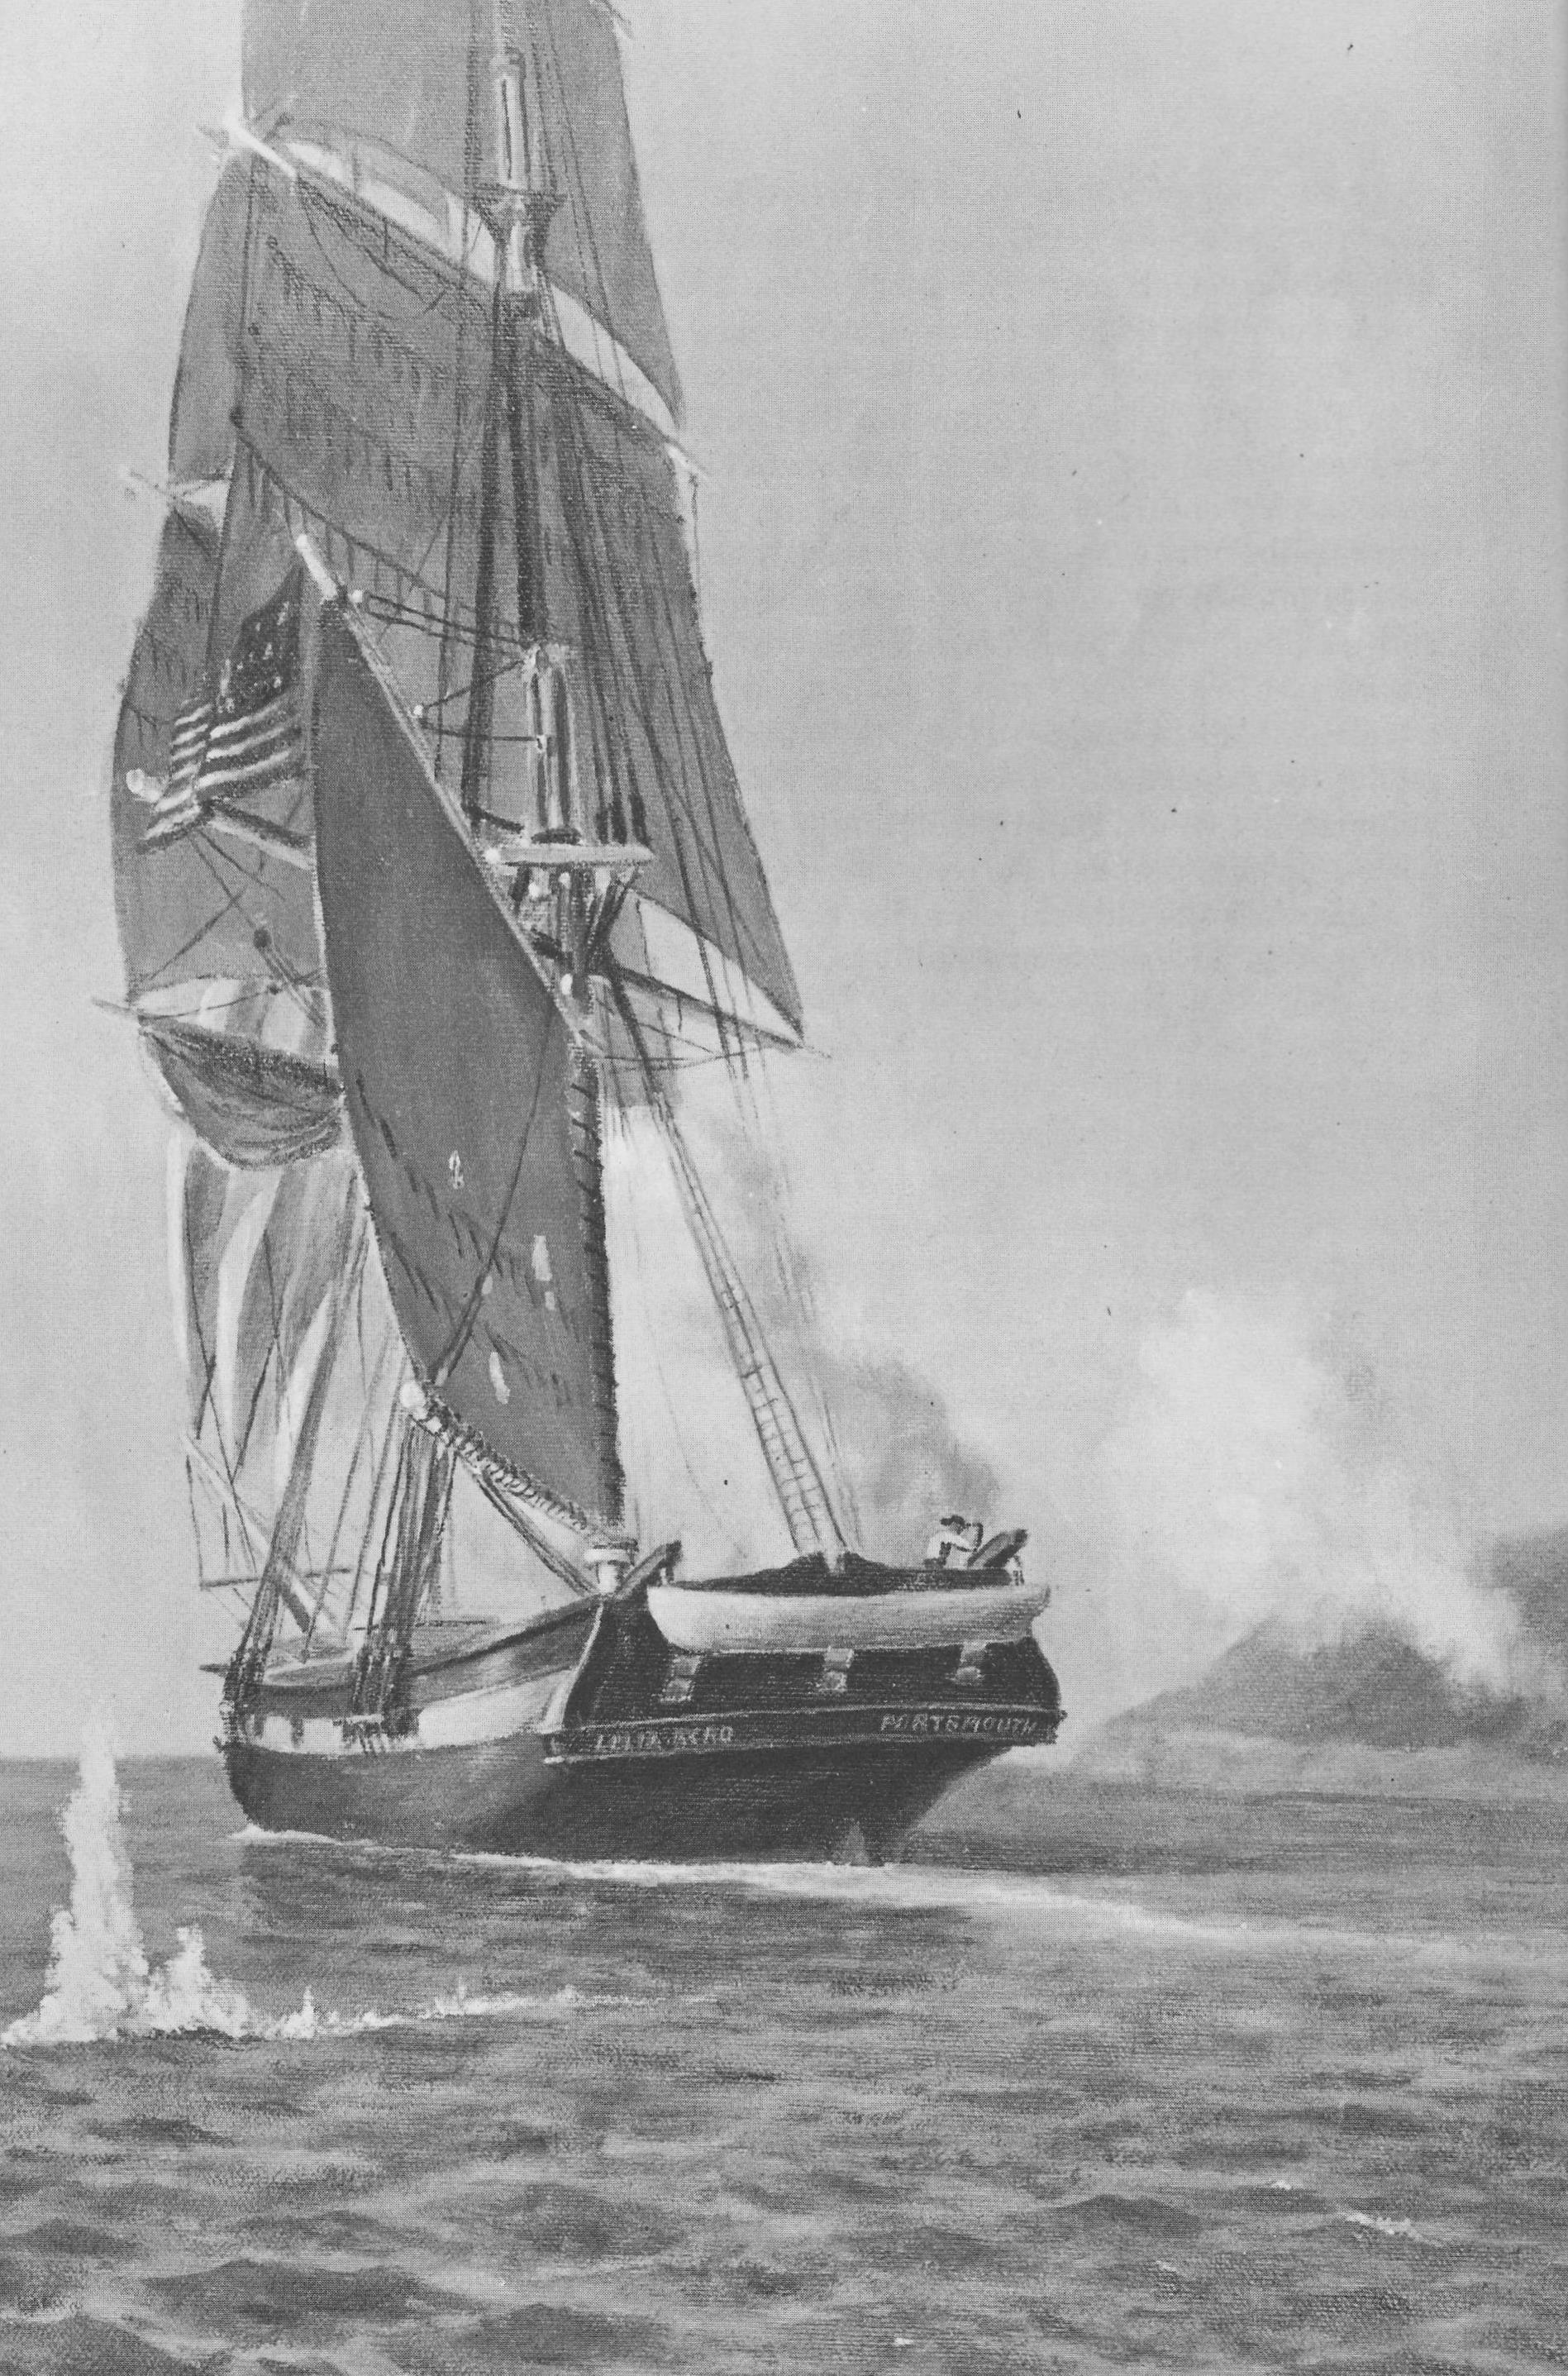 Leila Byrd Sailing from Cannon Fire